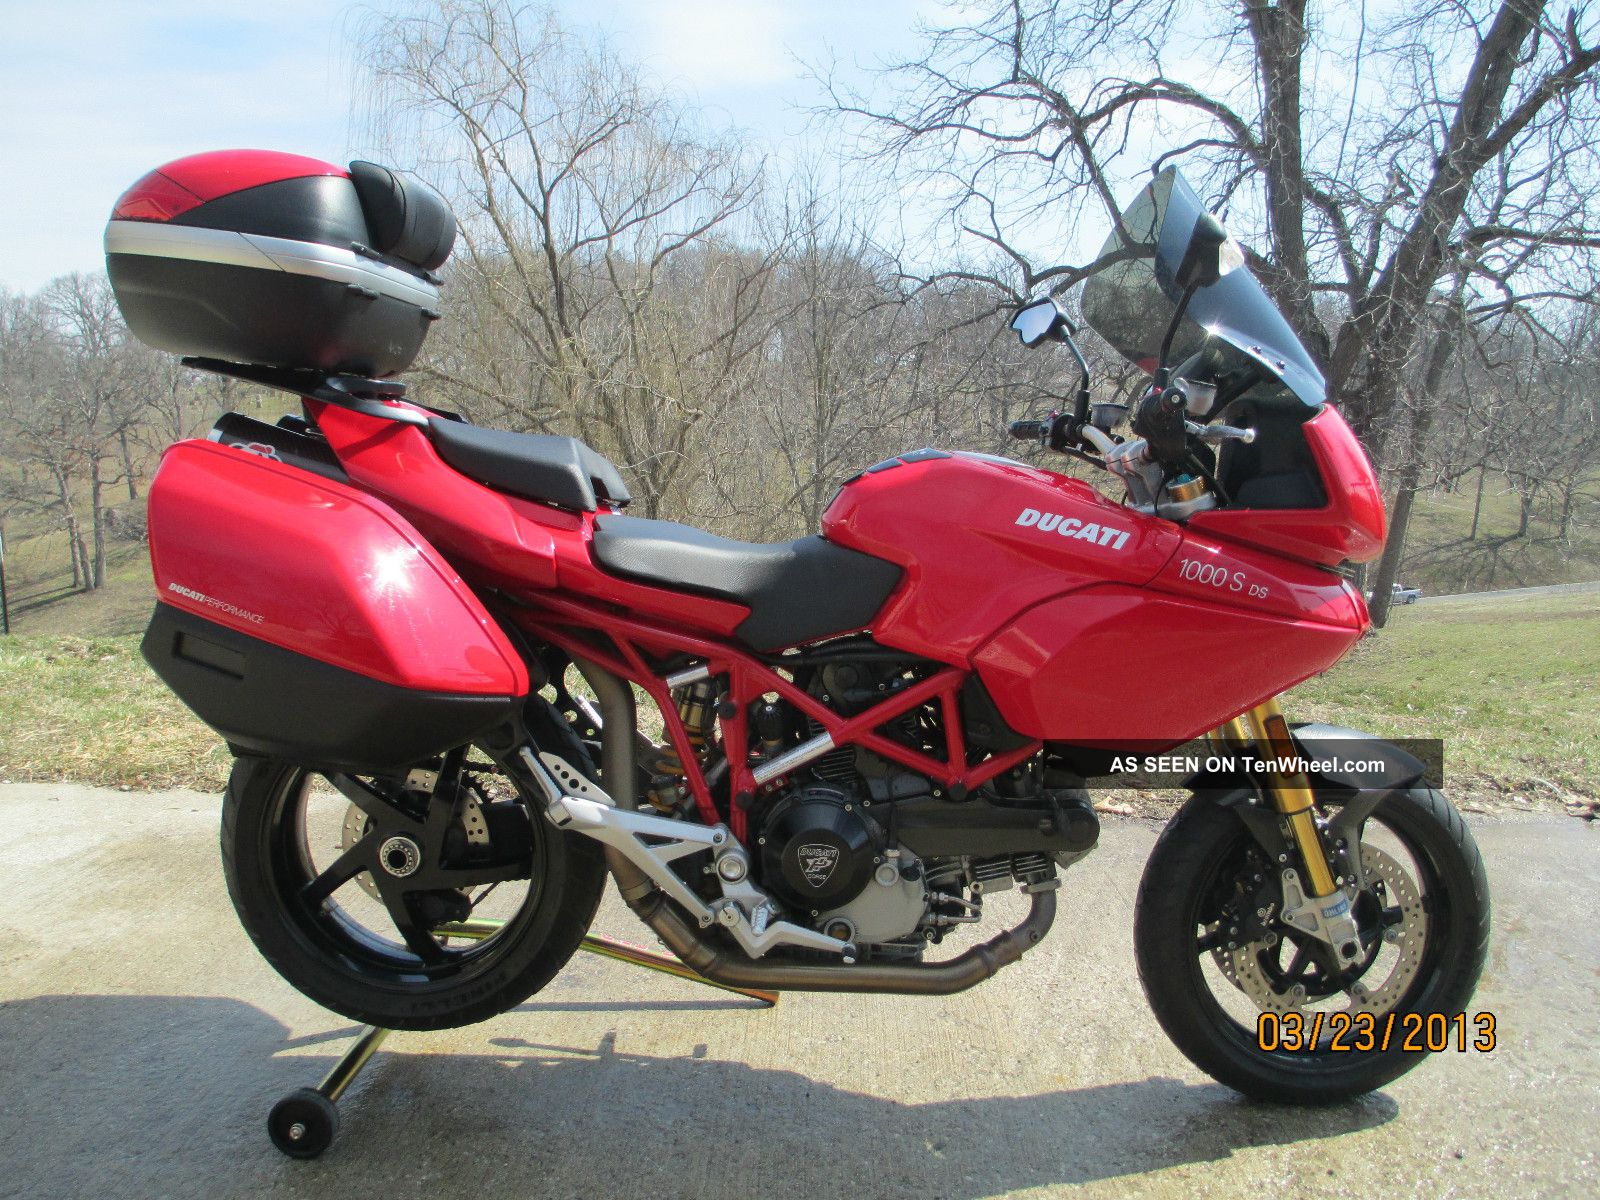 2005 ducati multistrada 1000s ds moto zombdrive com. Black Bedroom Furniture Sets. Home Design Ideas